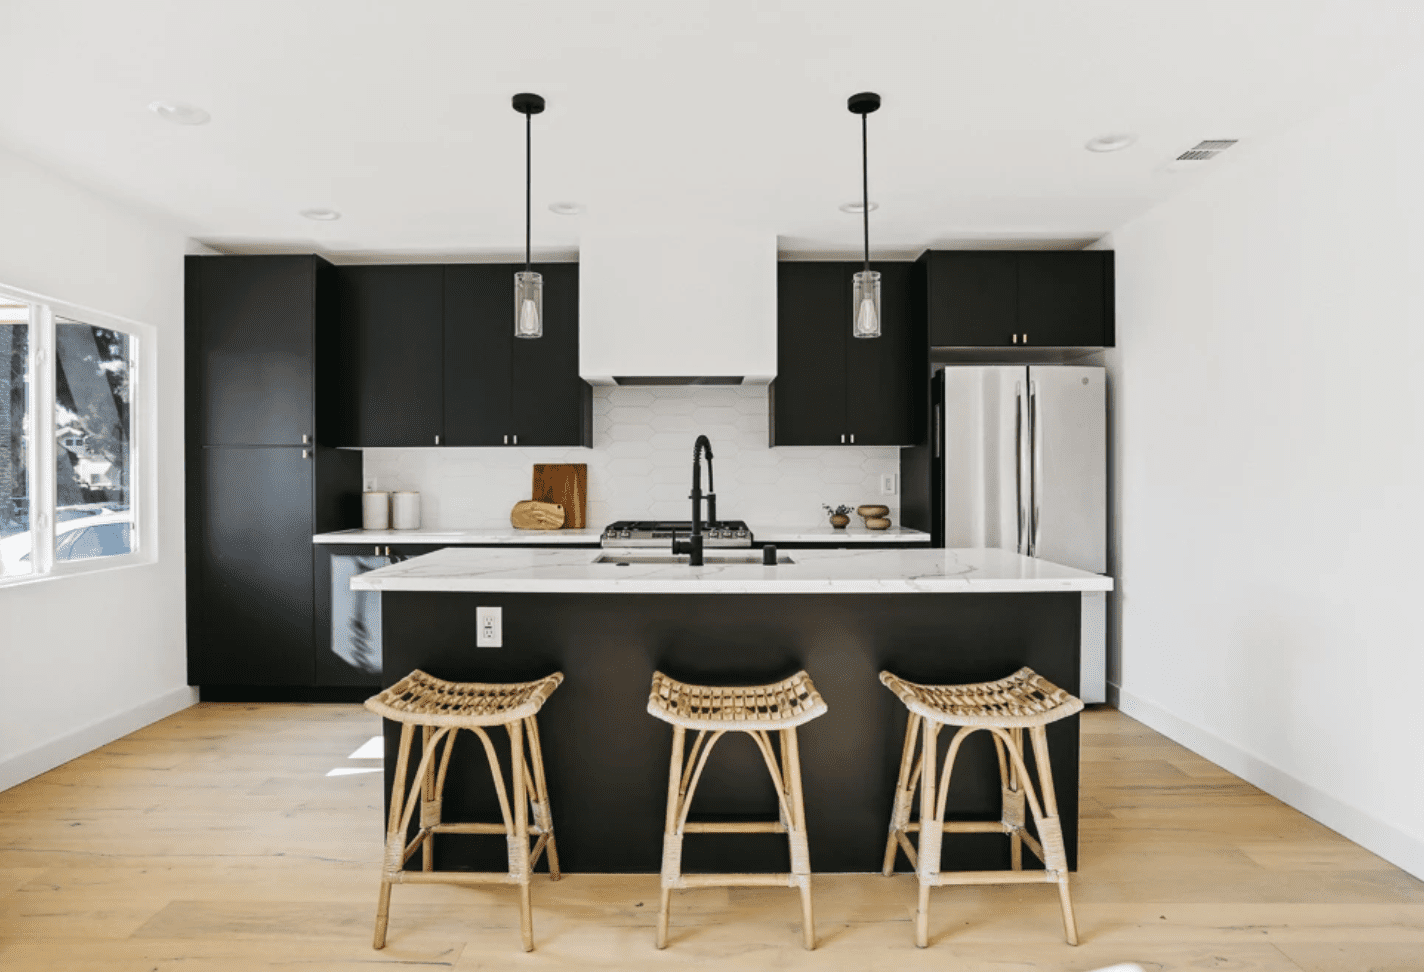 A kitchen with black cabinets and a white backsplash, crafted from hexagonal tiles